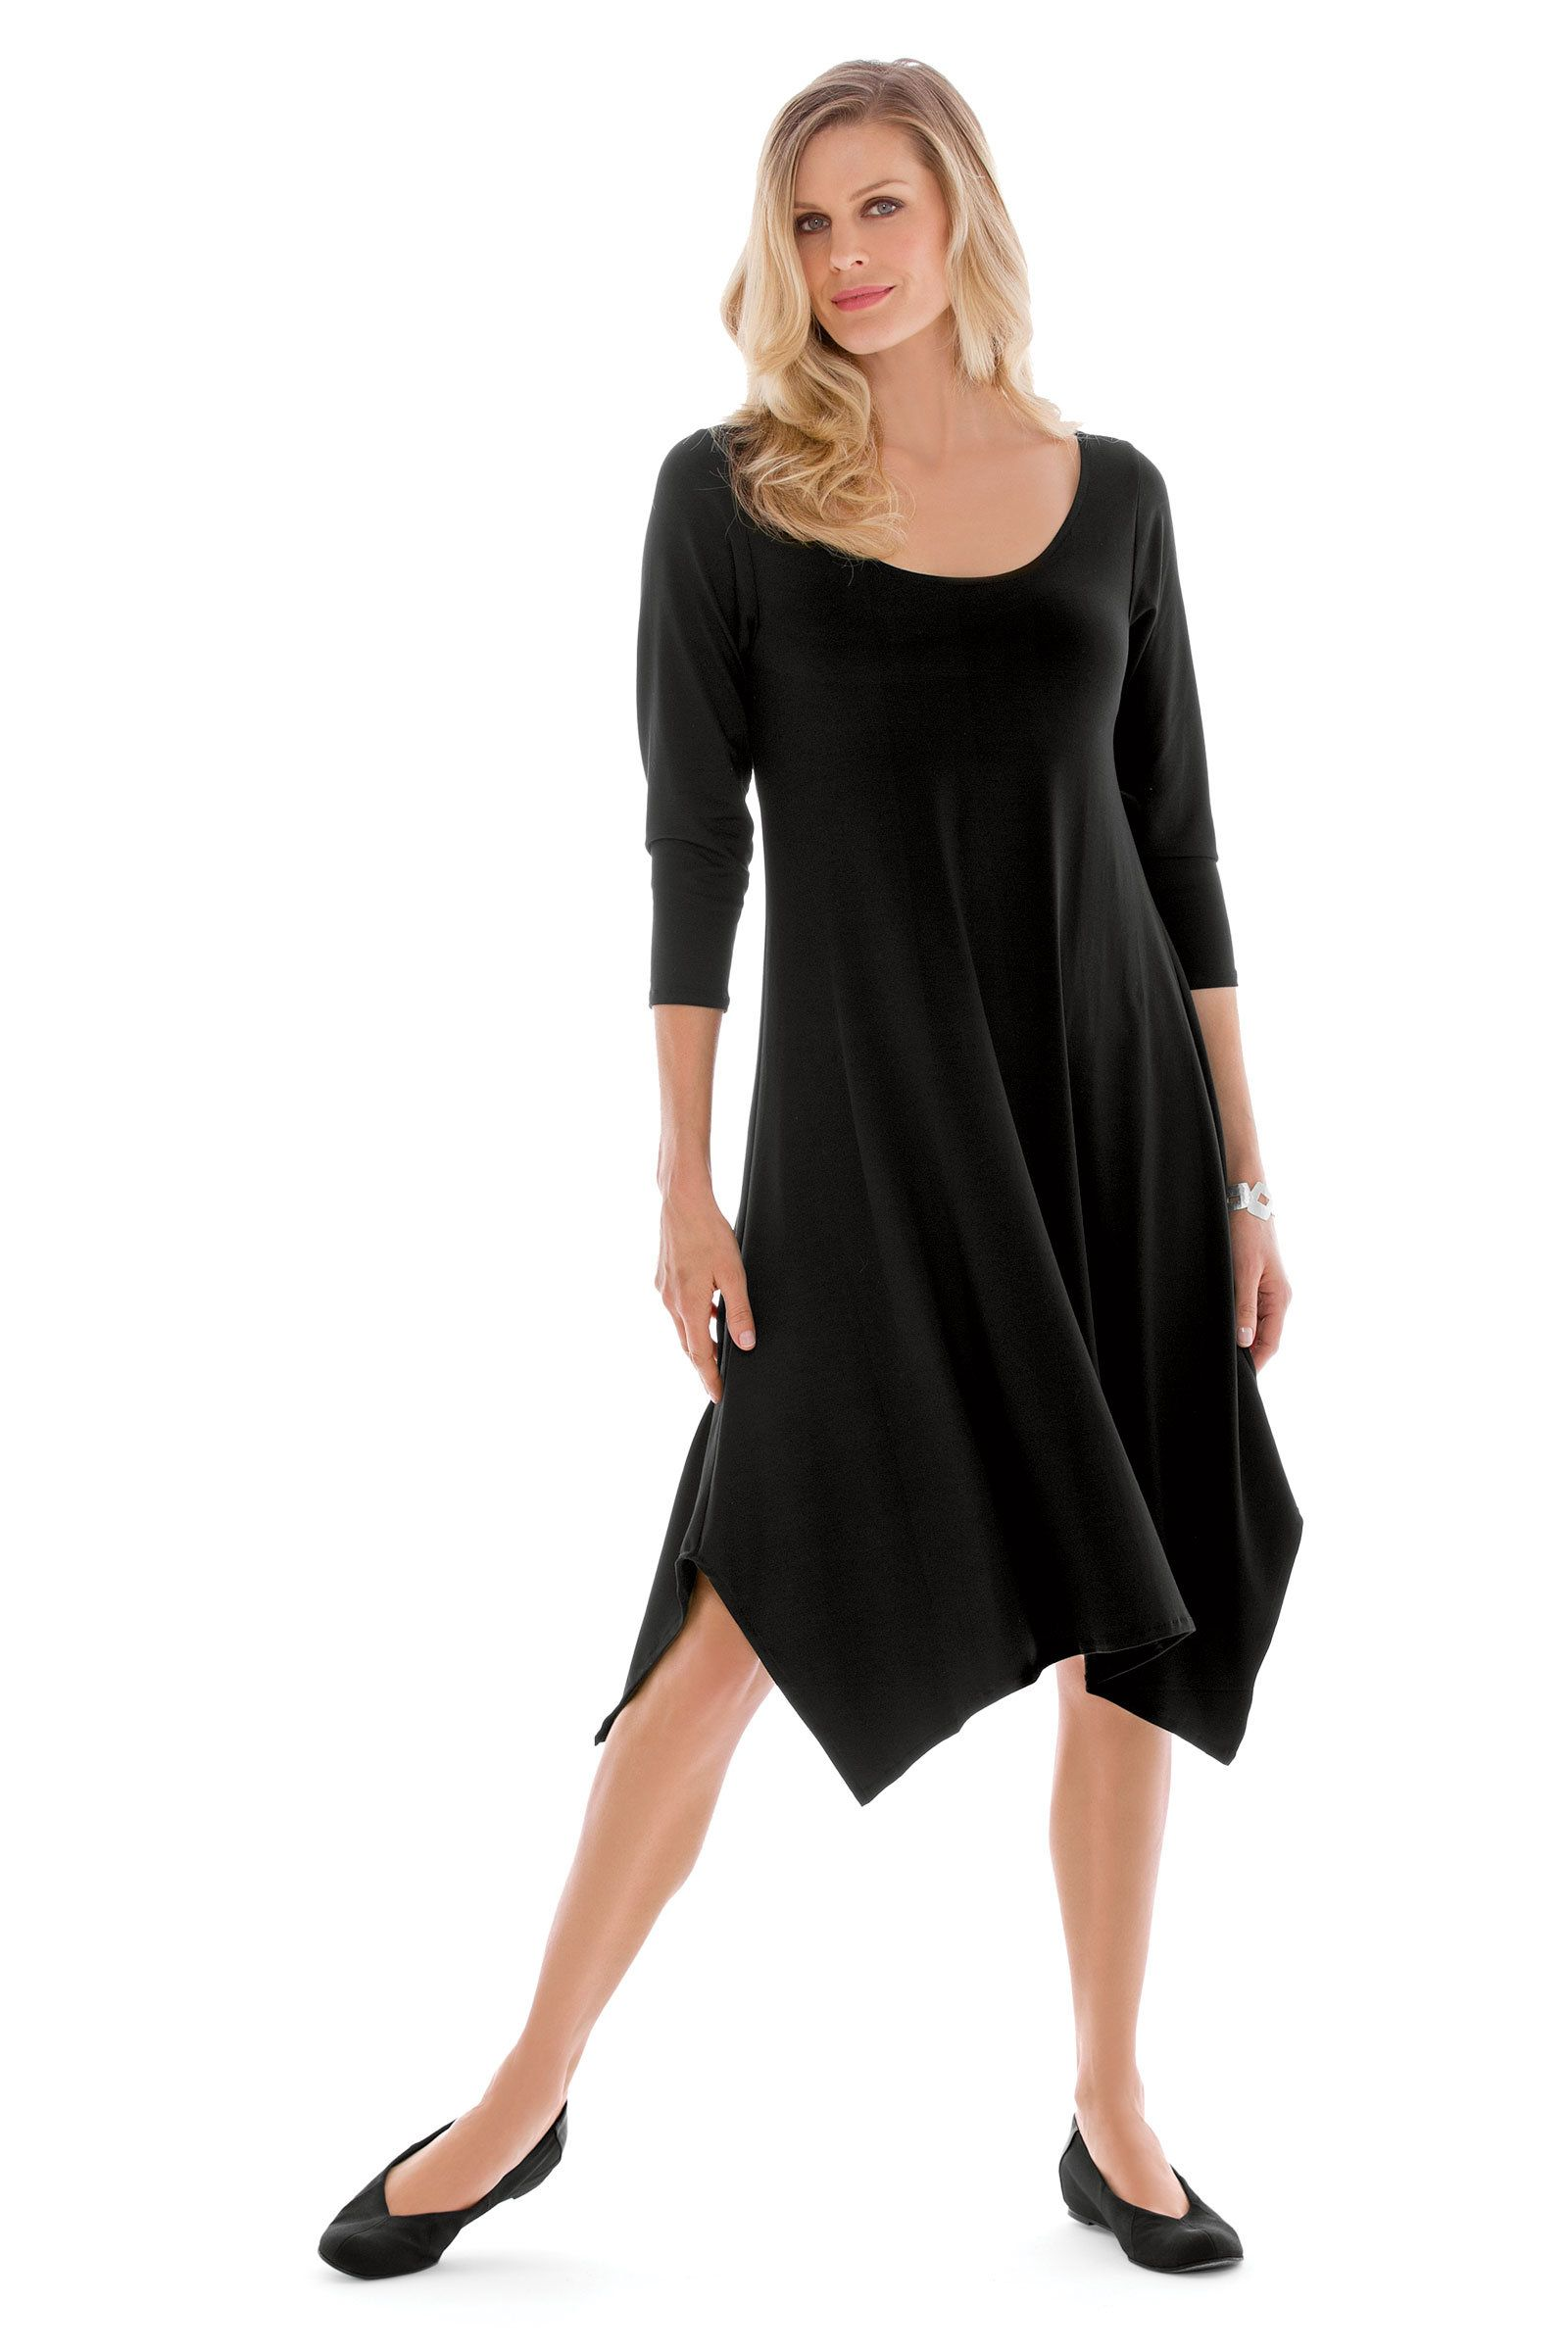 Travel Knit Simple Dress by F.H. Clothing Company (Knit Dress) | Artful Home